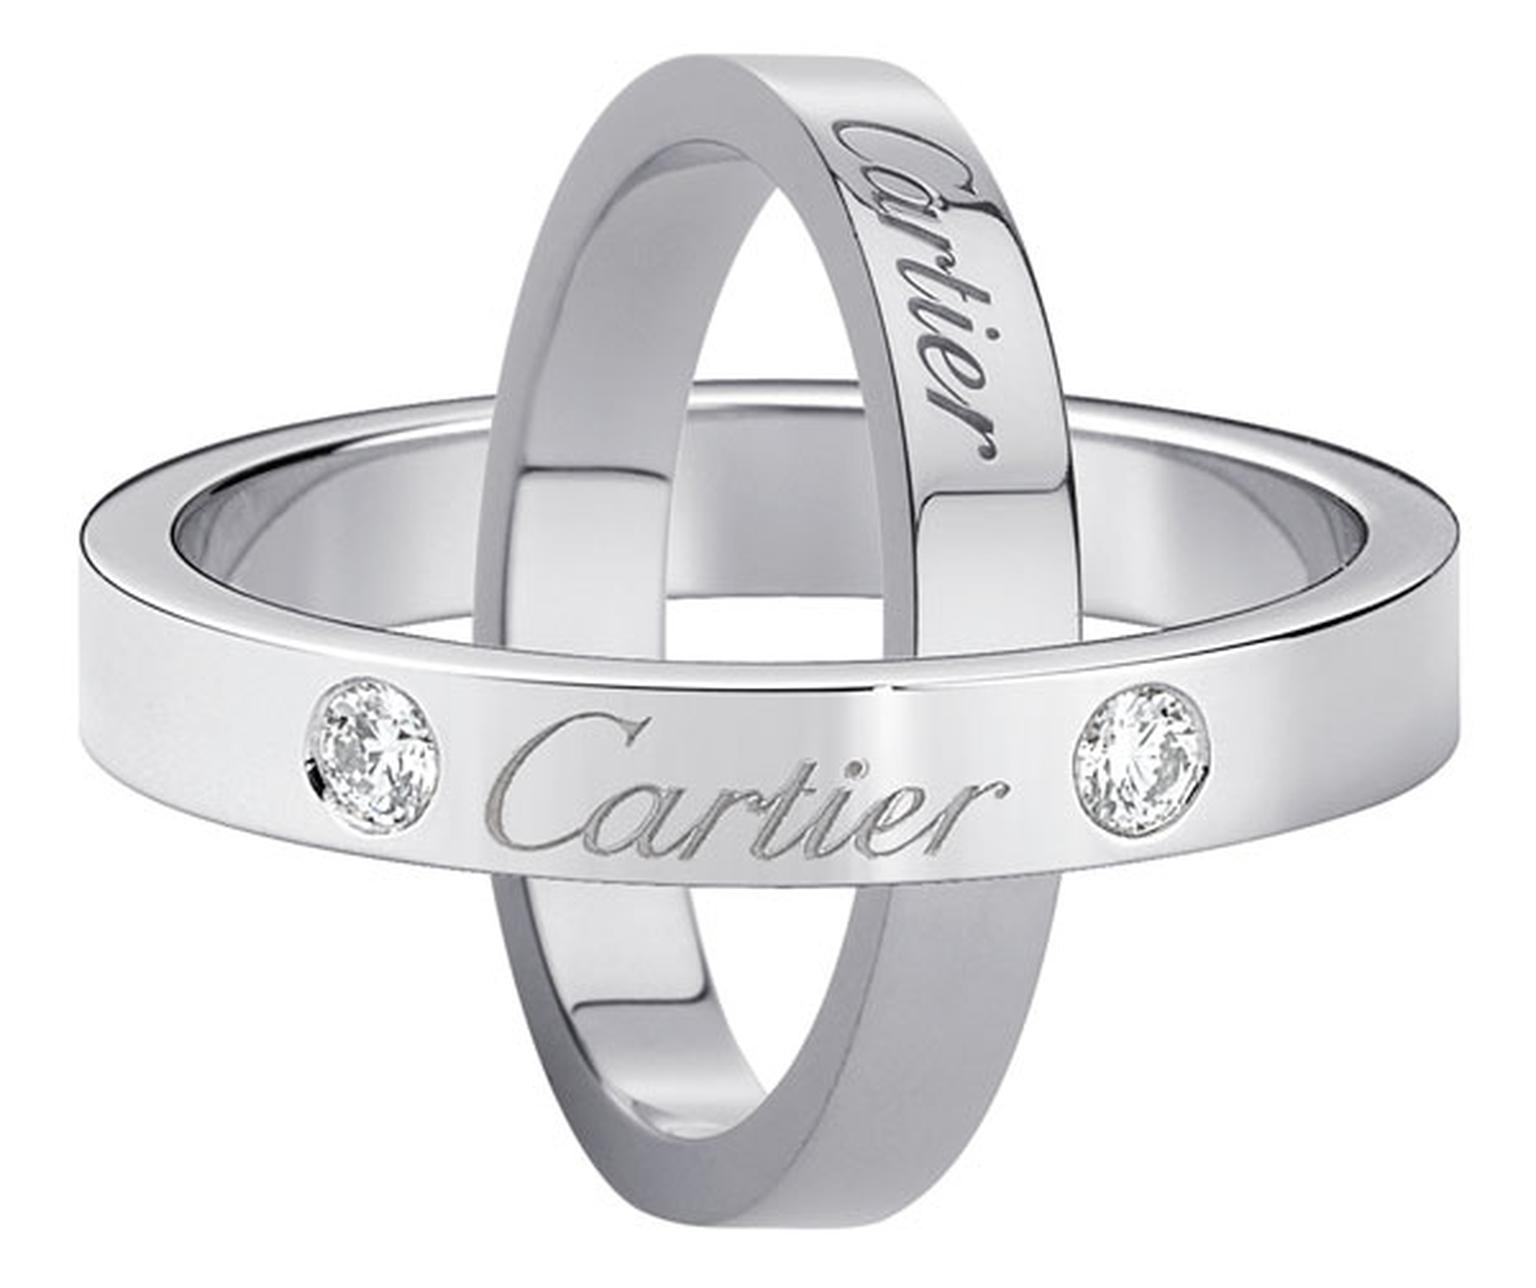 Image result for 2 Cartier jewellery